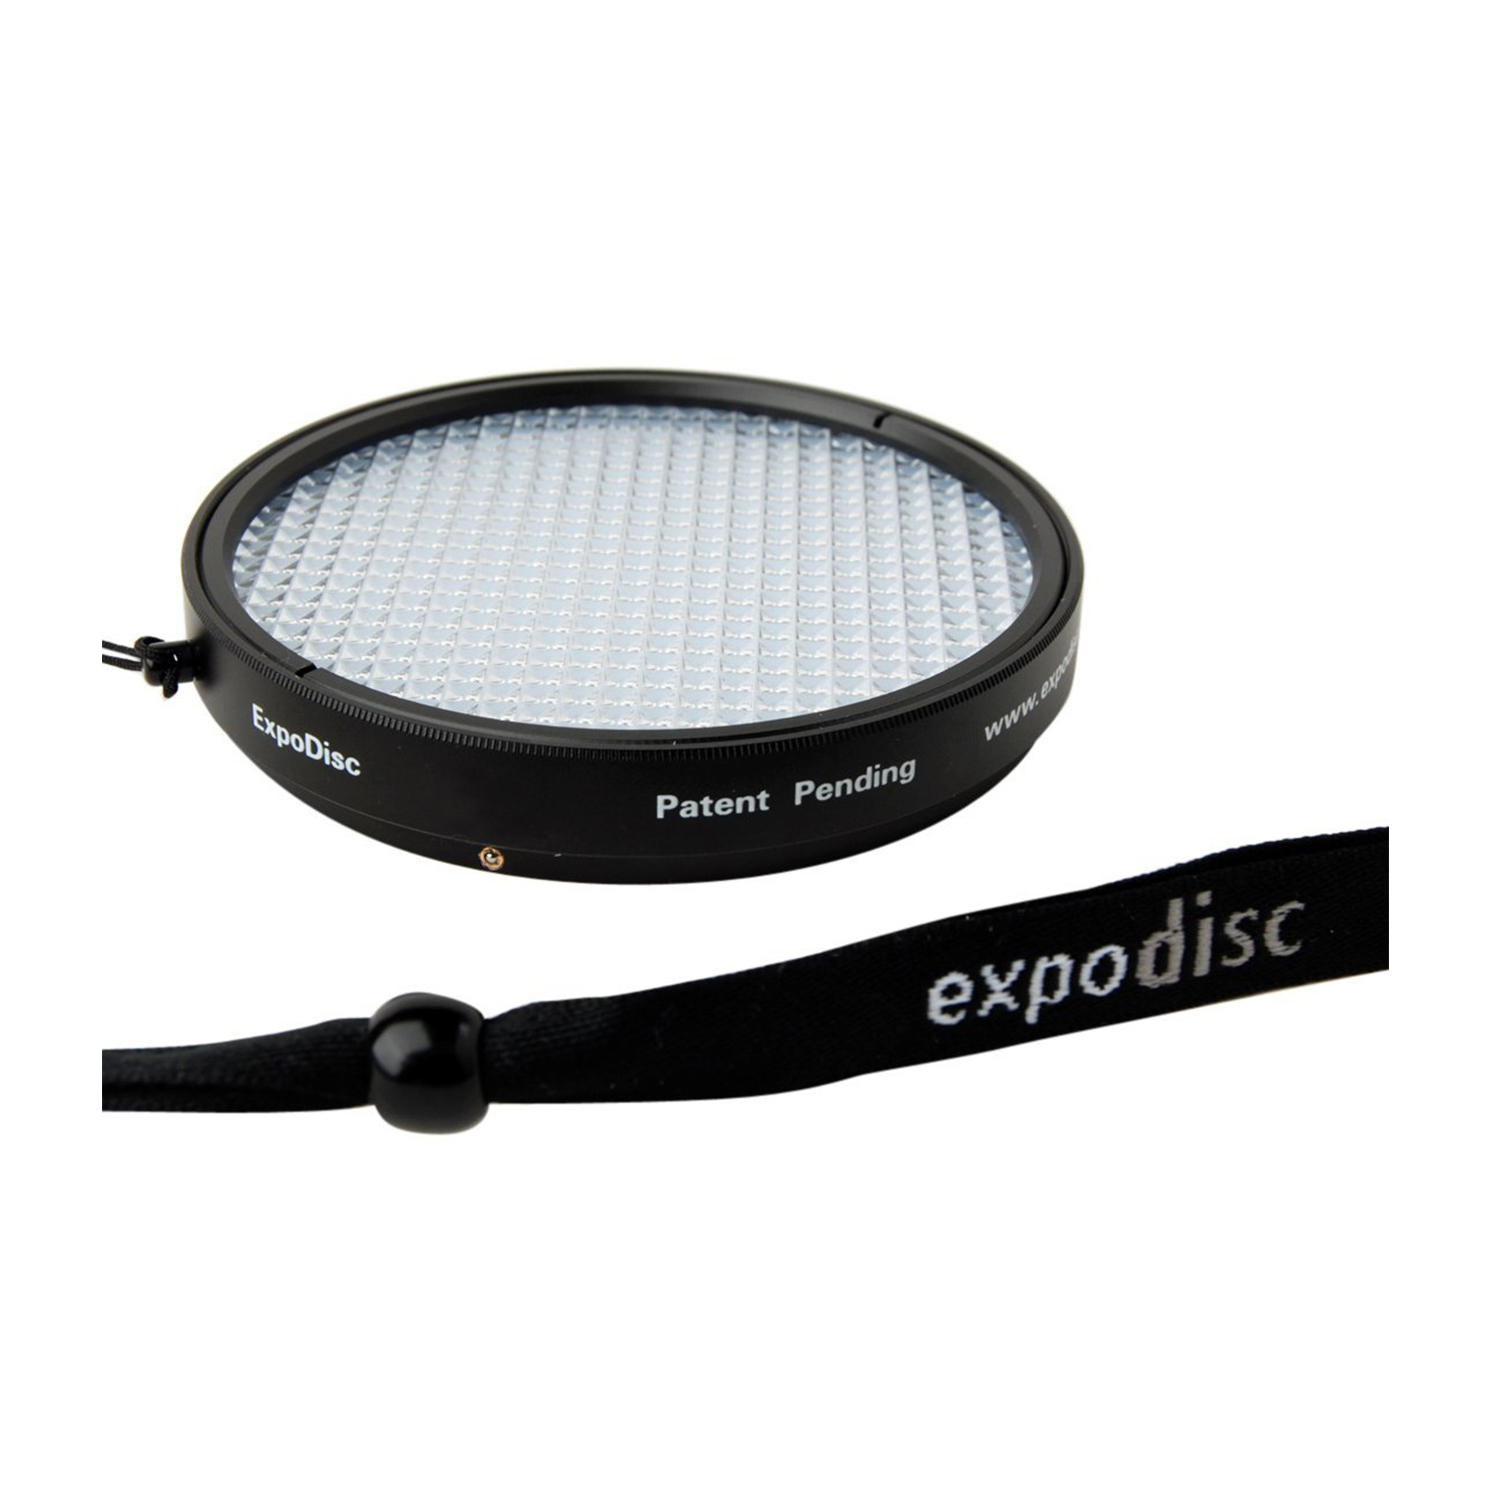 ExpoDisc Professional Digital White Balance Filter - 82mm - Neutral